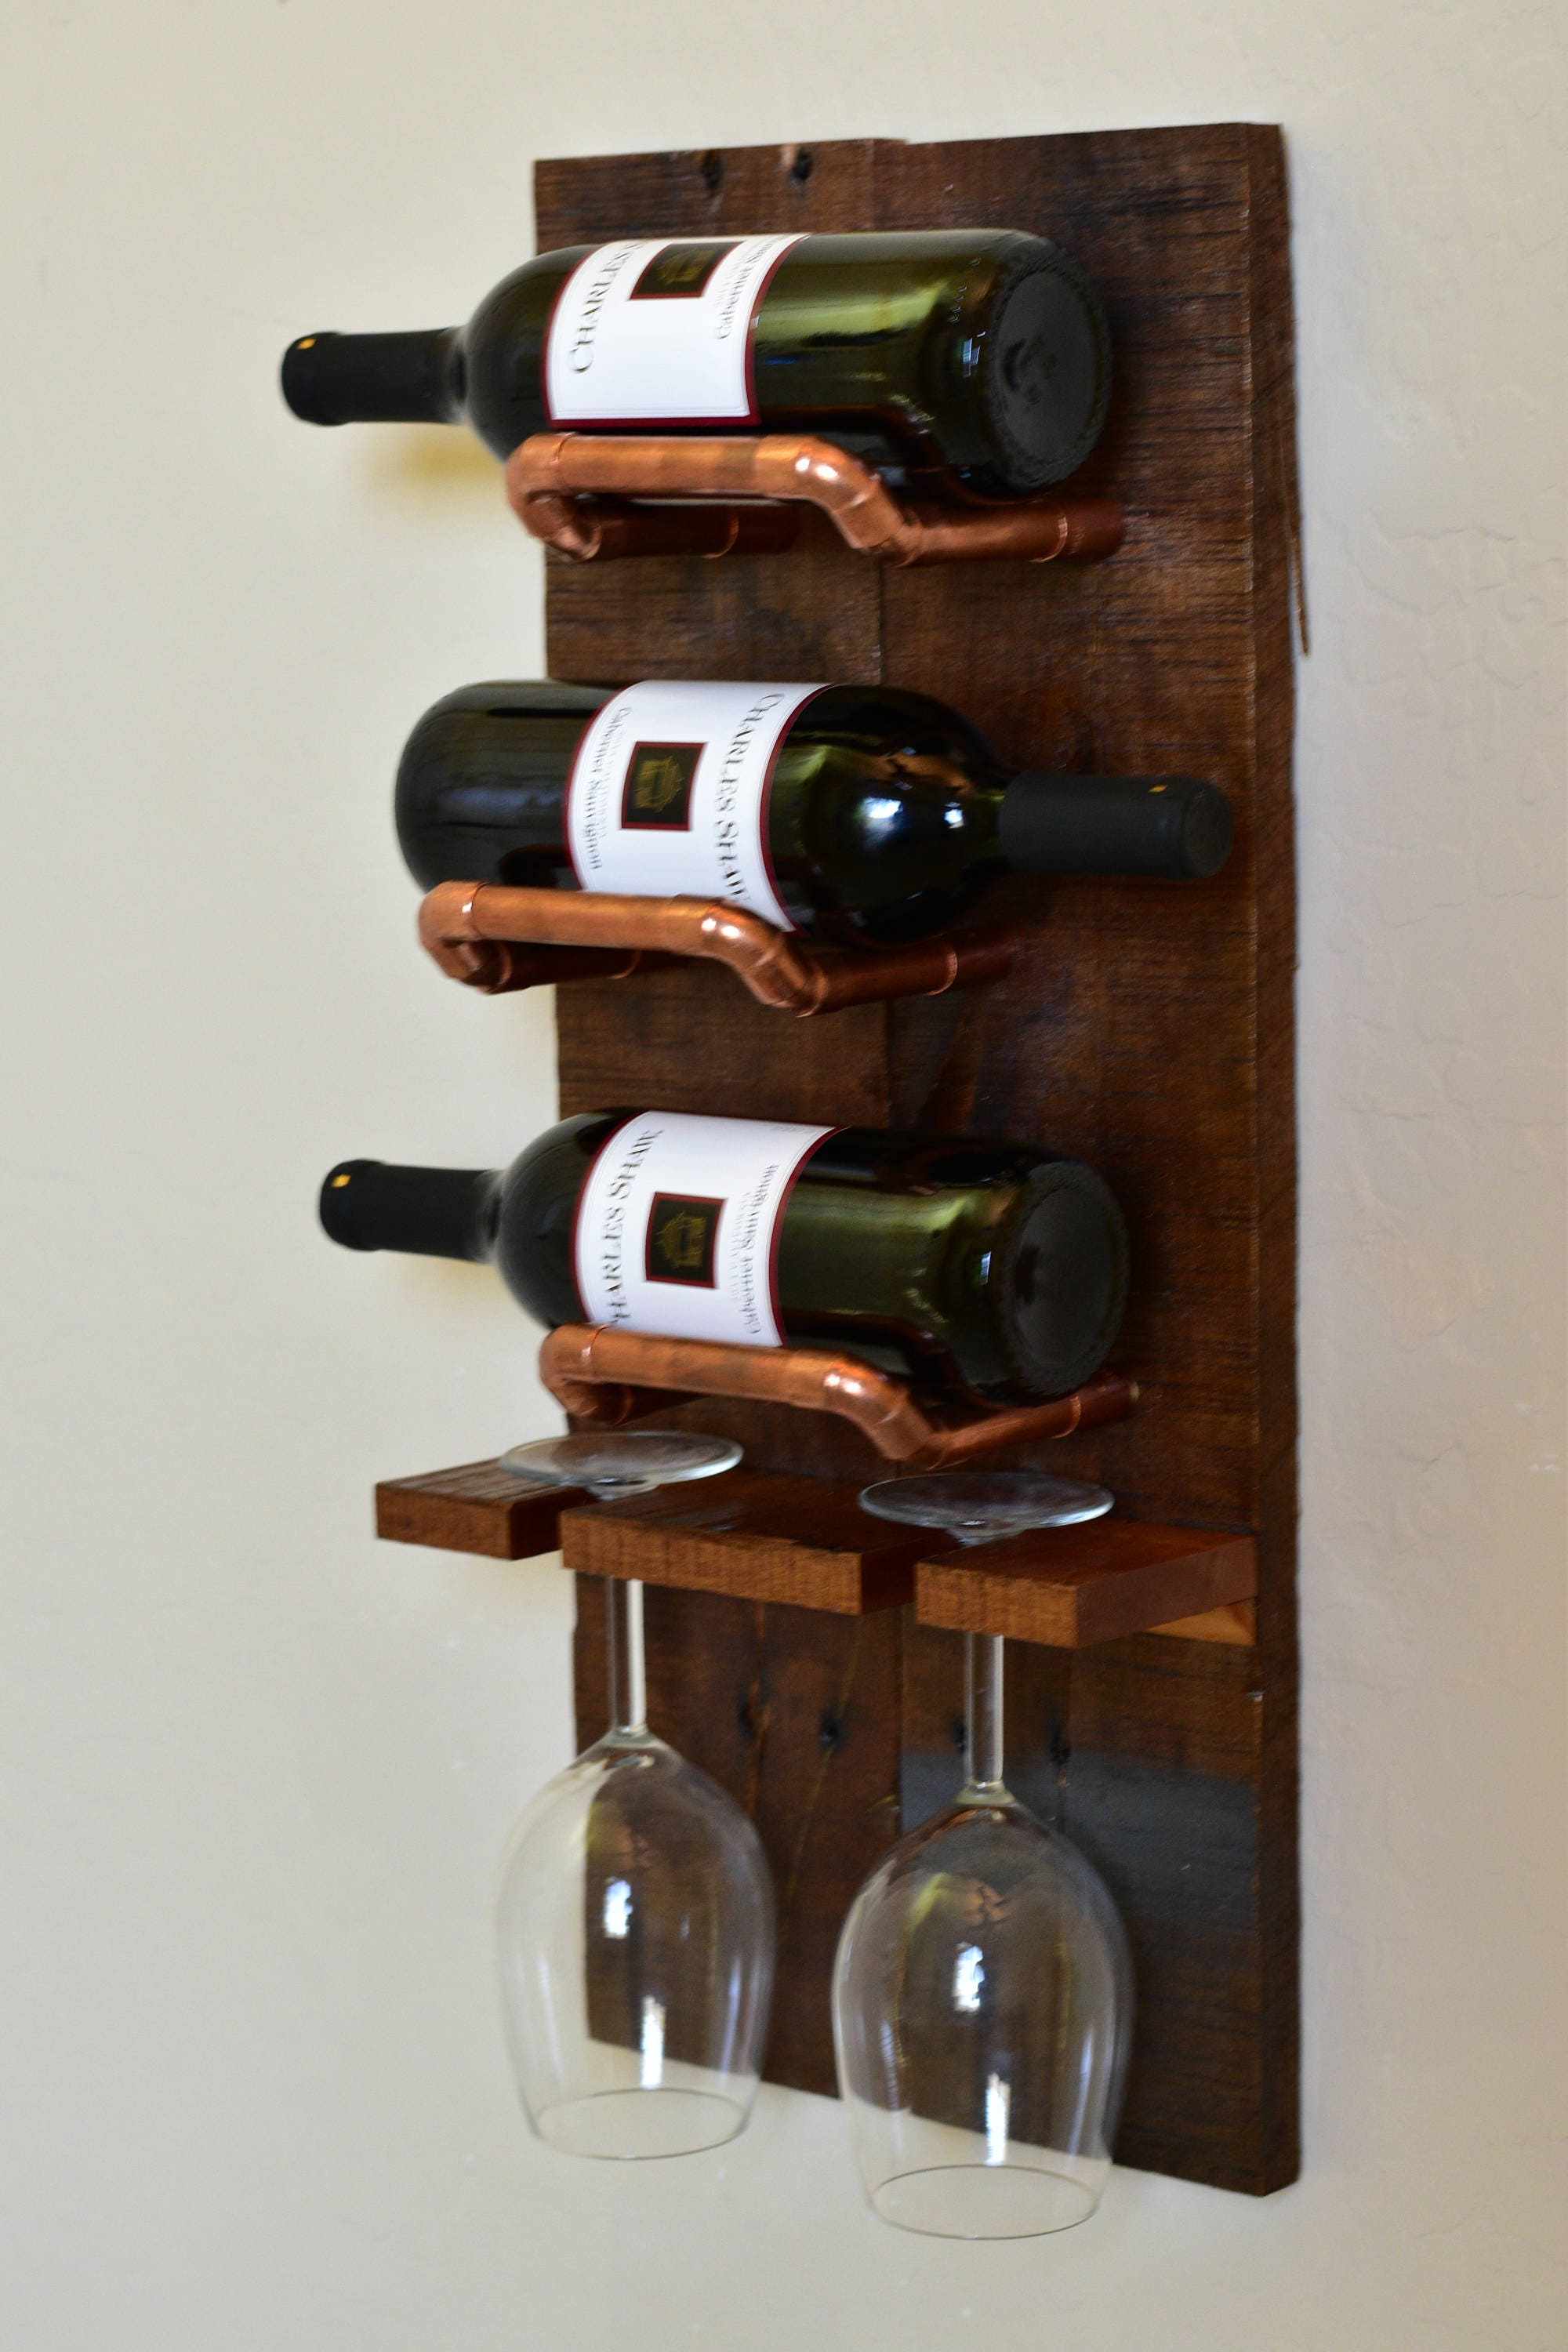 to of glass mount size bottle mounted wine metal wooden storage where buy rack stackable holder full hanging homemade cabinet x wood wall white racks unique organizer corner